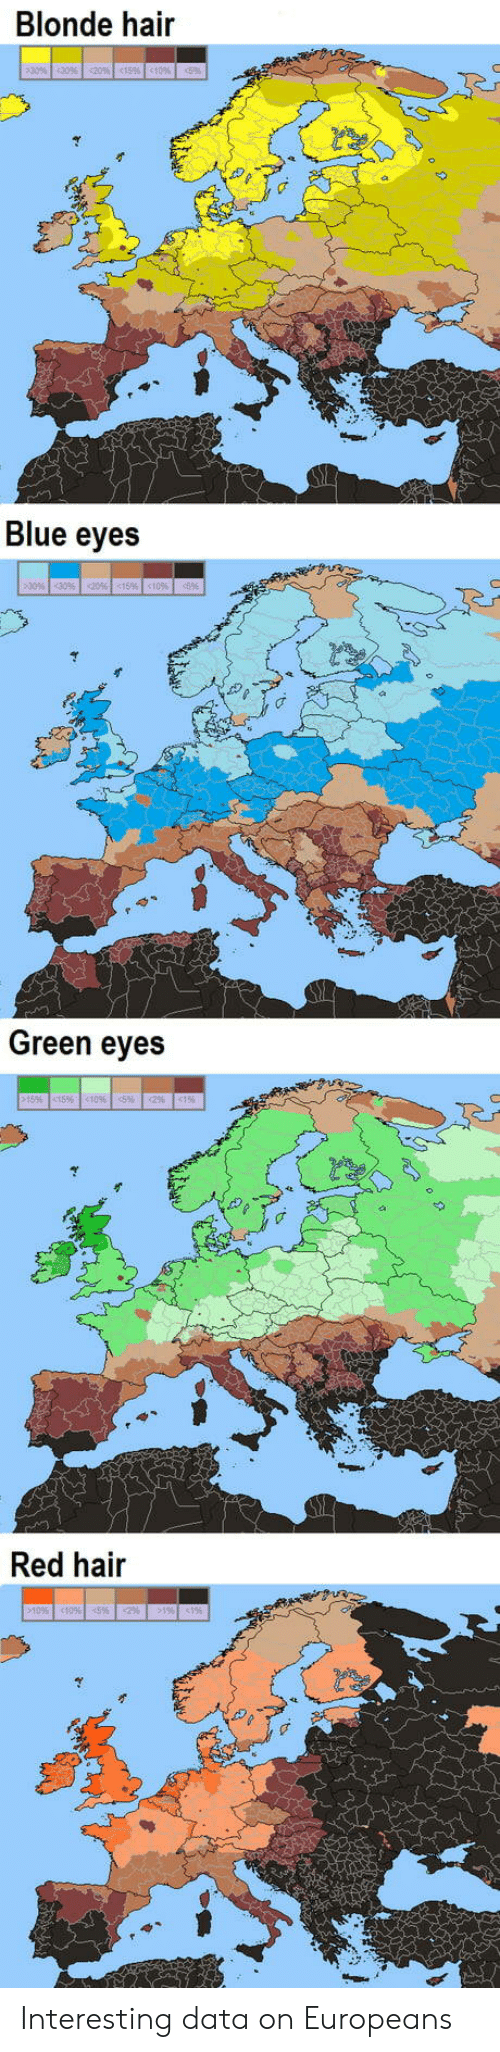 red hair: Blonde hair  Blue eyes  Green eyes  15 tS 109 (5% %  Red hair  105052% Interesting data on Europeans